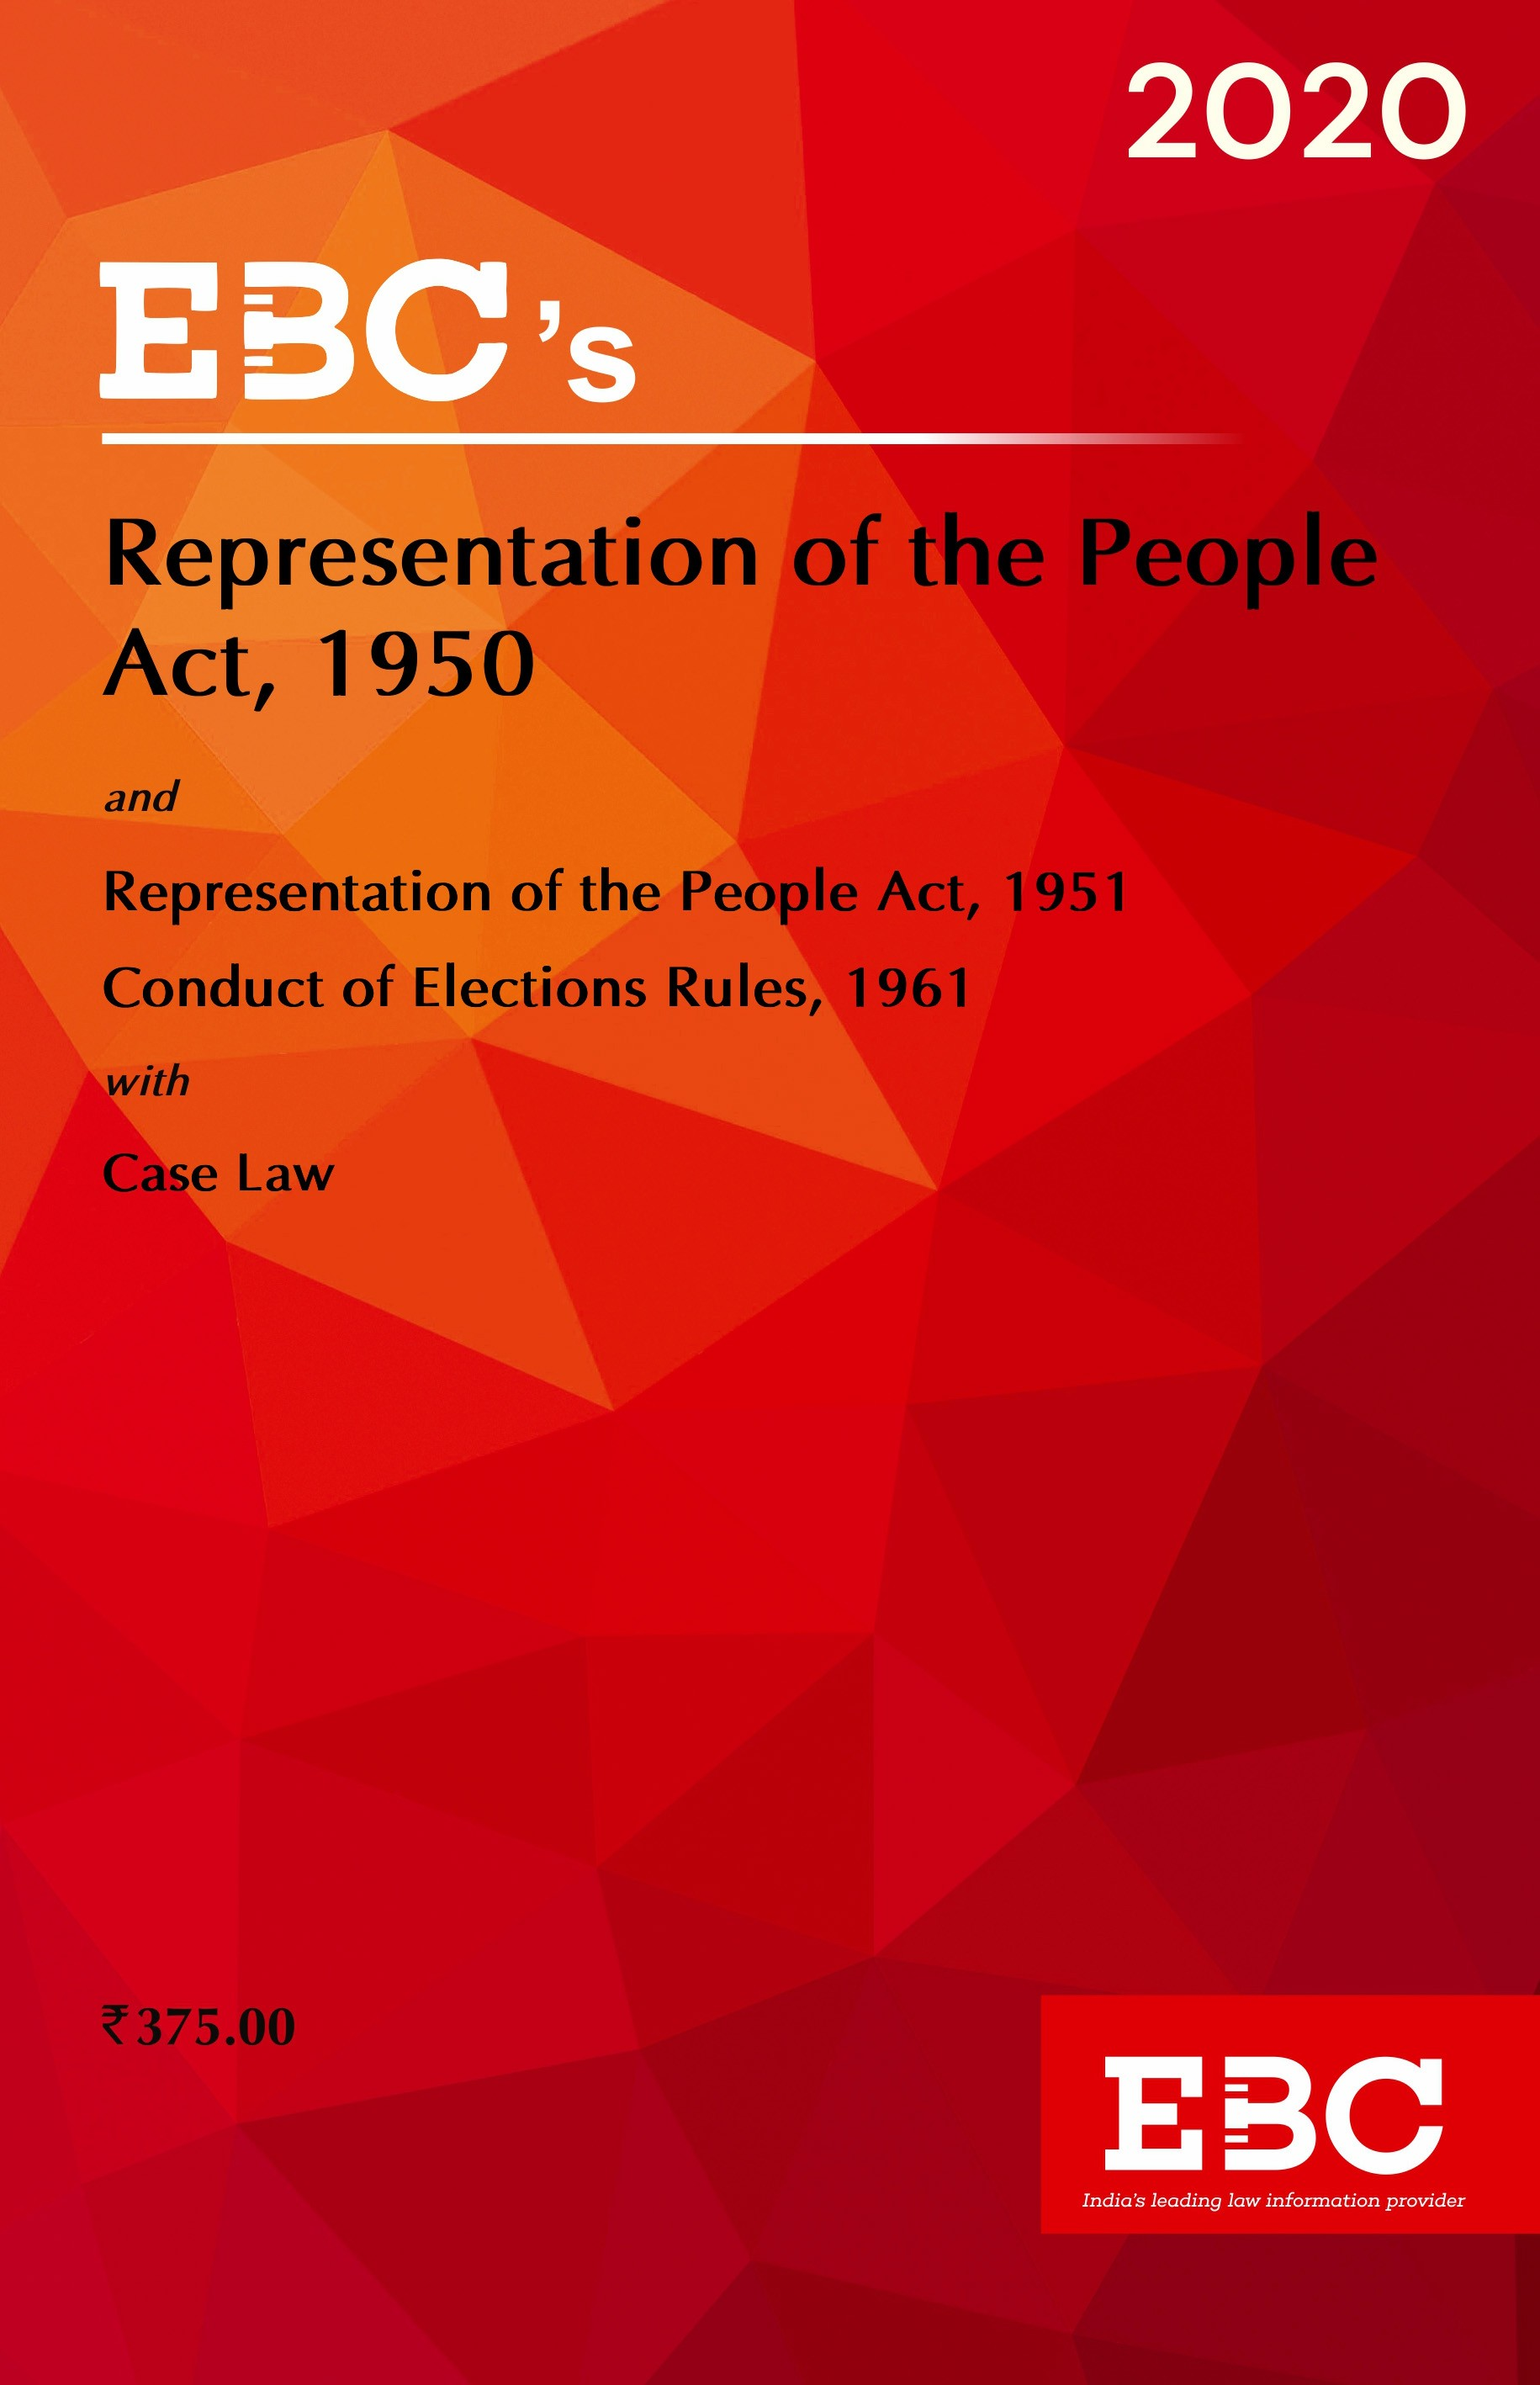 Representation of the People Act, 1950